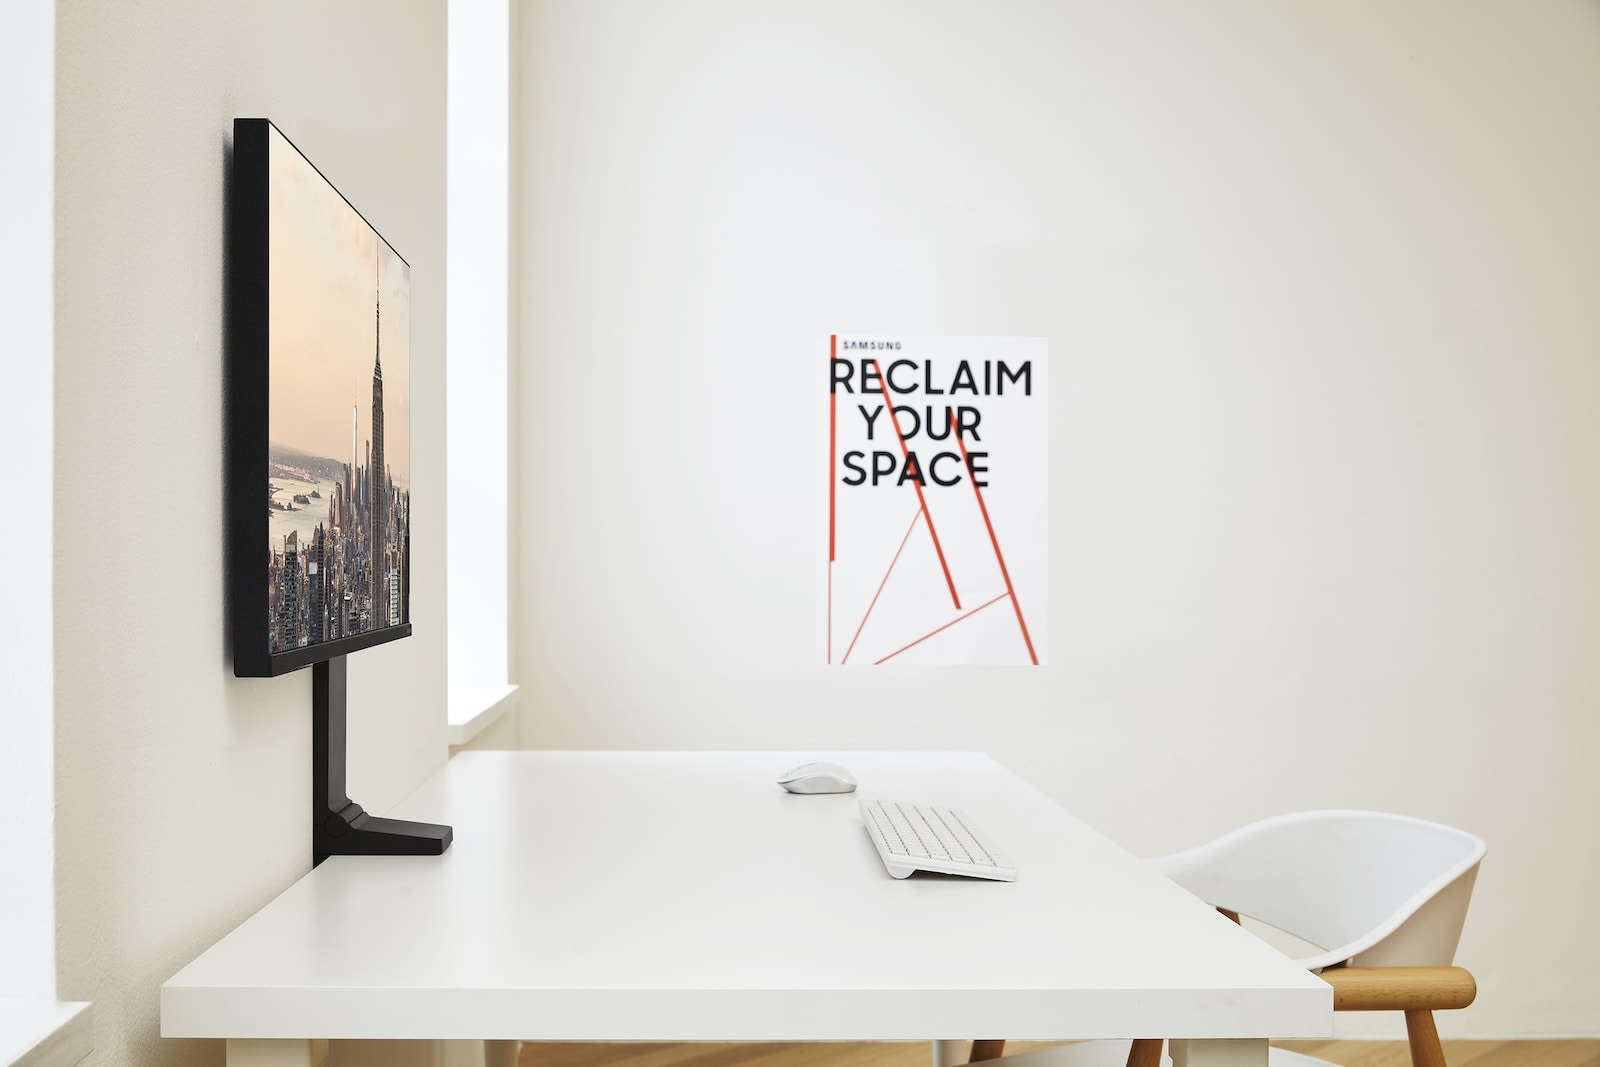 Samsung's space-saving monitor can be pushed flat against the wall